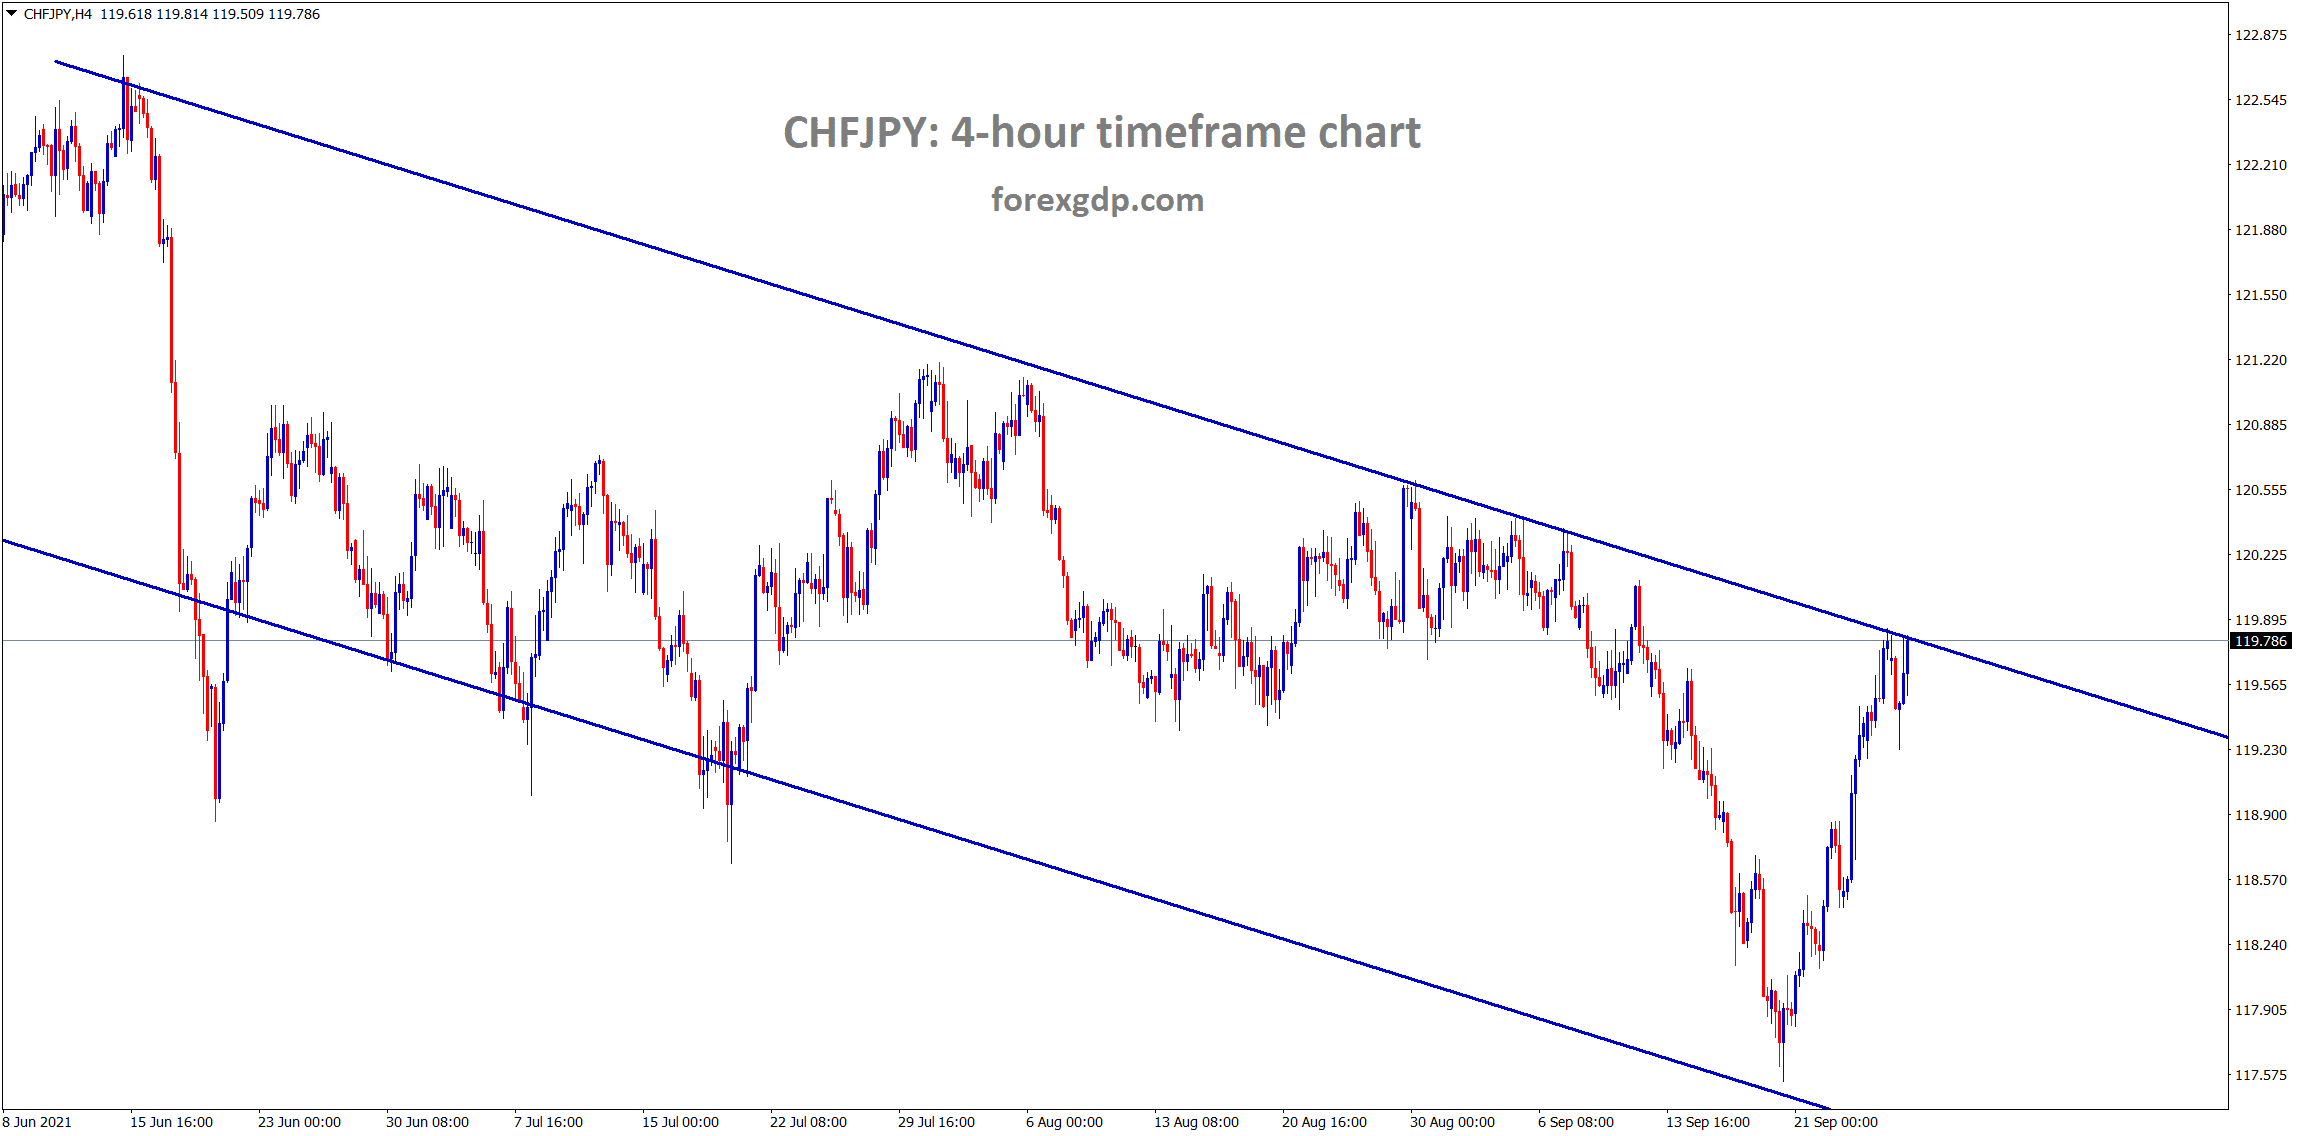 CHFJPY has reached the lower high area of the downtrend line wait for breakout or correction